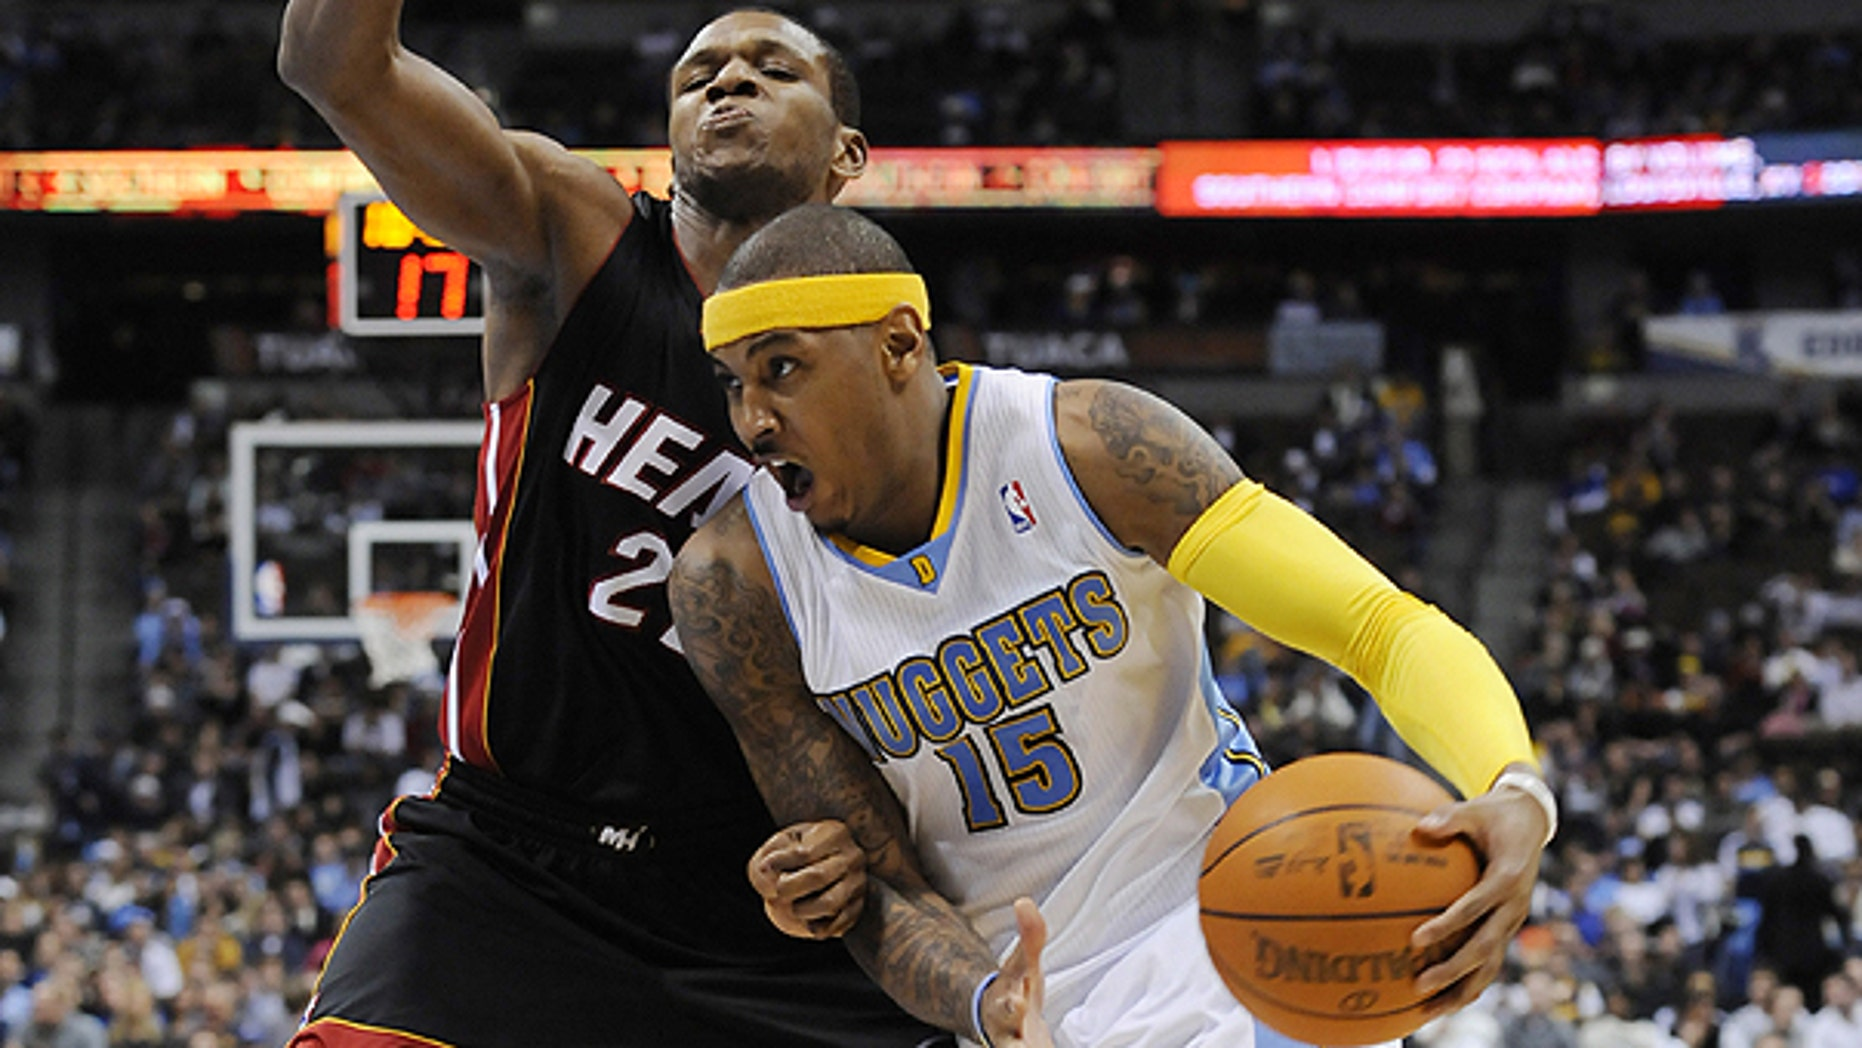 Jan. 13: Denver Nuggets forward Carmelo Anthony (15) drives past Miami Heat forward James Jones (22) during the third quarter of an NBA basketball game in Denver.